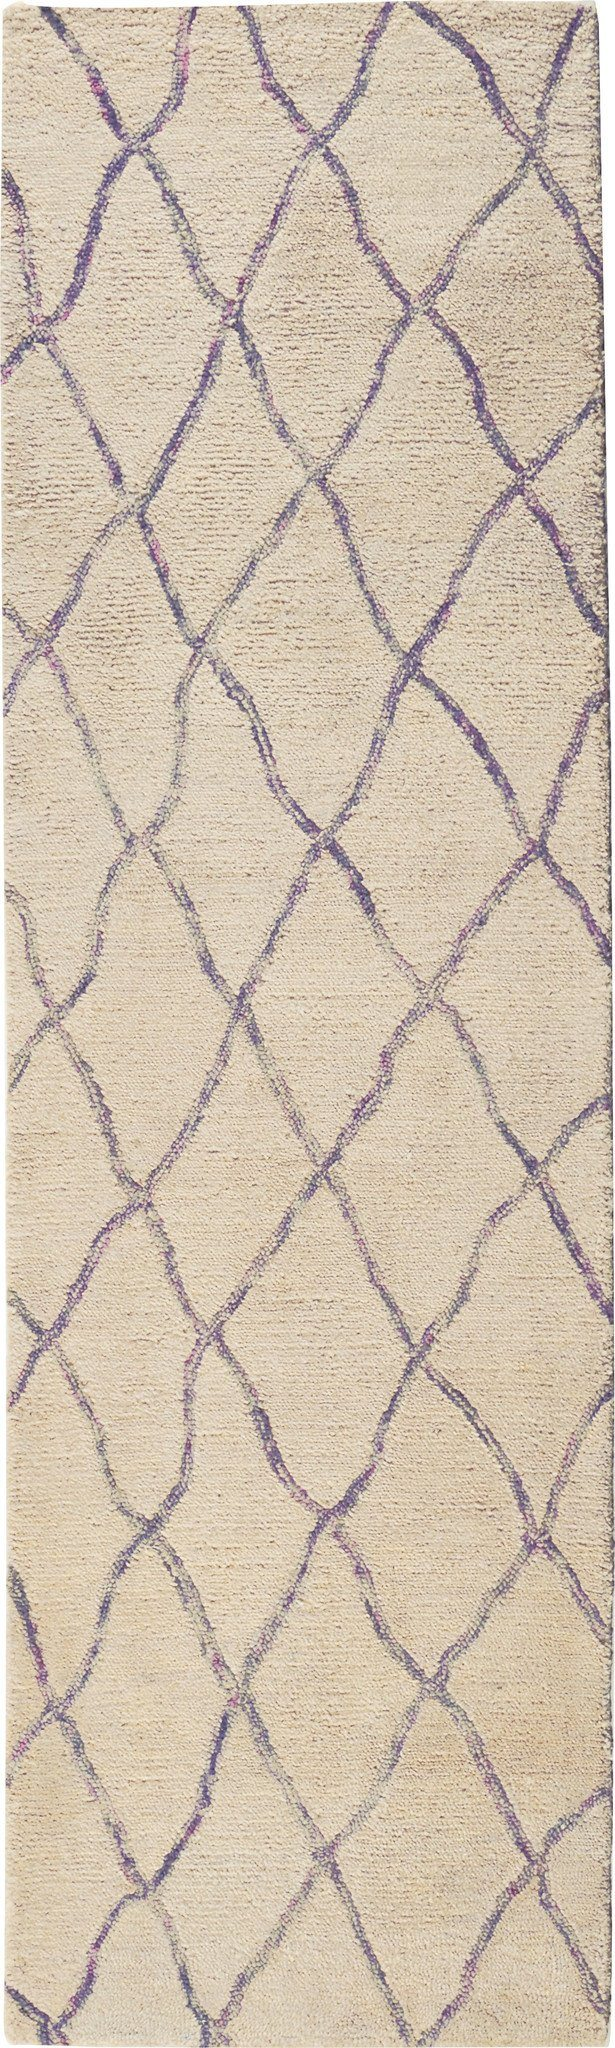 "Intermix Driftwood Rug - 3 Sizes Available Rugs Nourison 2'3"" x 8' Runner"